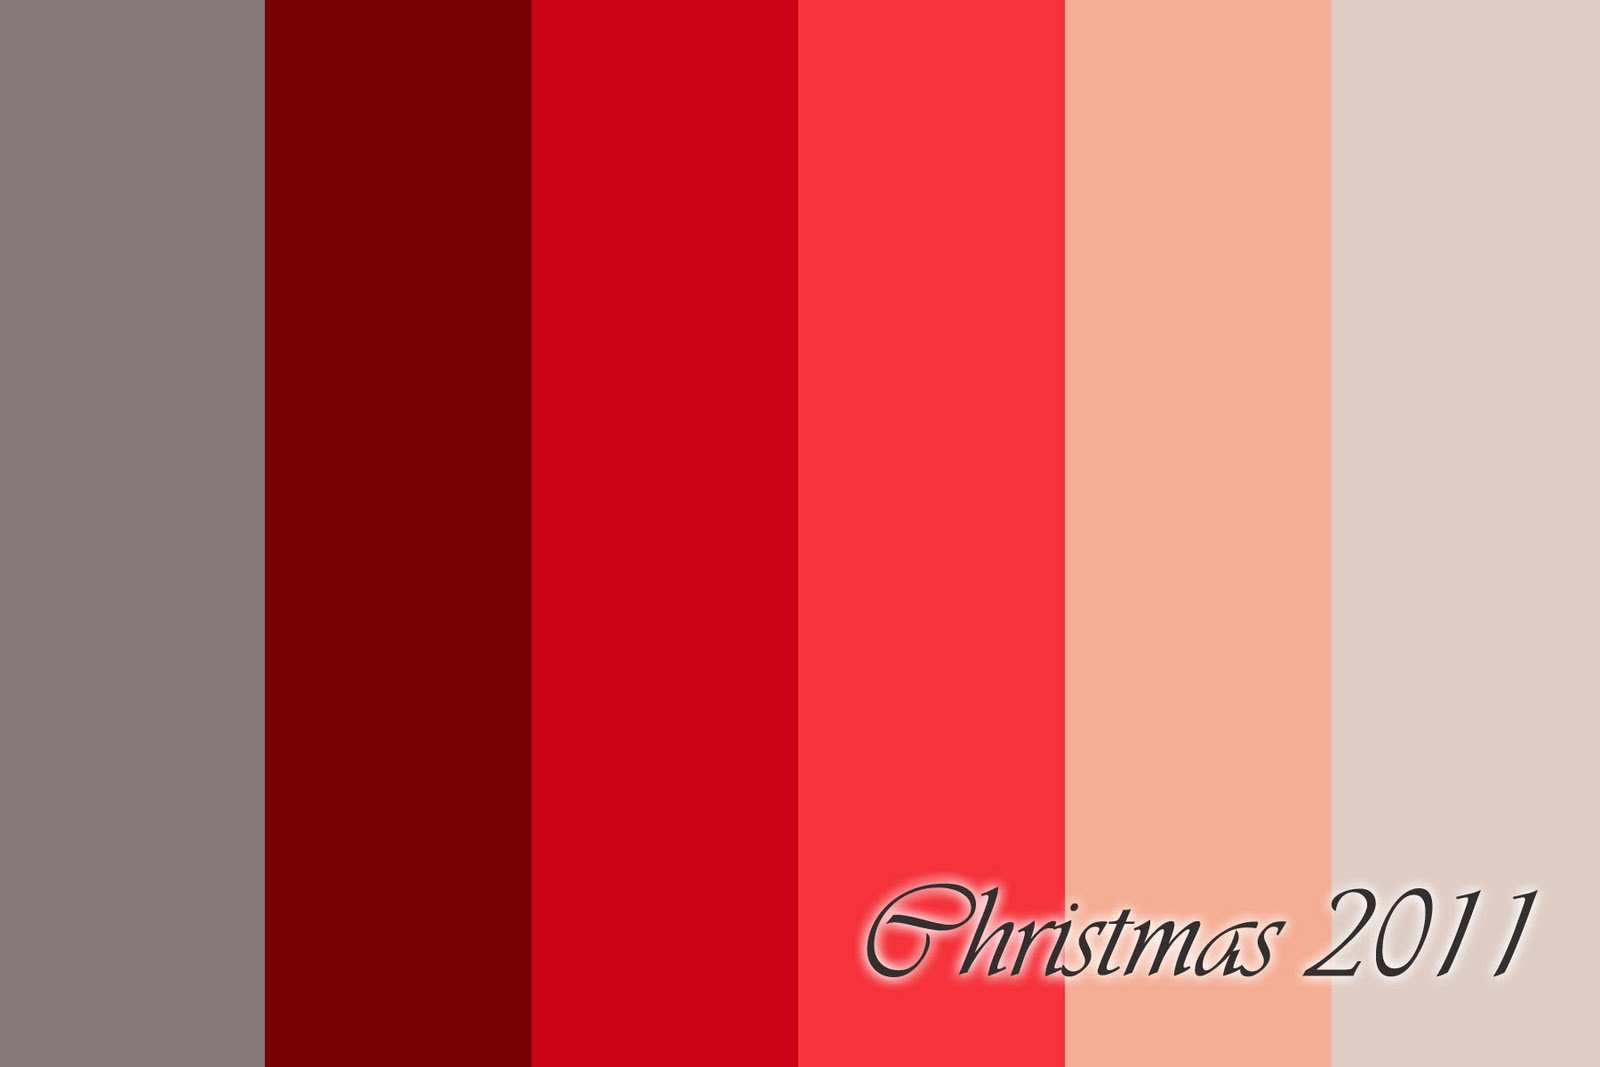 Christmas Colors Palette.Sarah Dawn Designs Digital Christmas Cards 2011 Sneak Peek